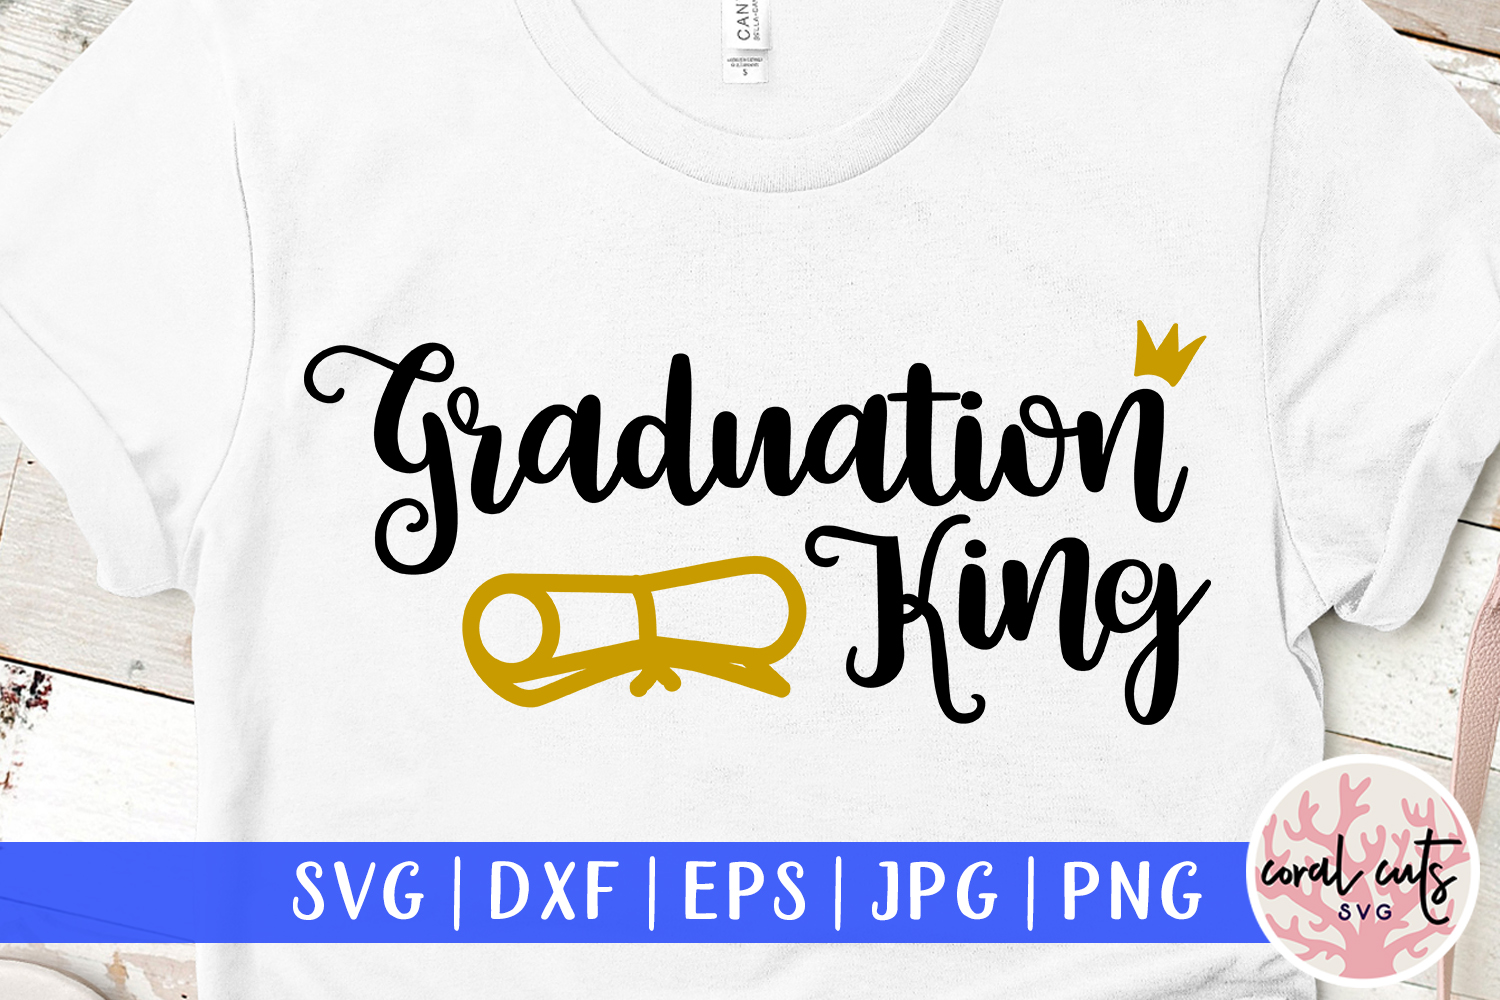 Download Free Graduation King Graphic By Coralcutssvg Creative Fabrica for Cricut Explore, Silhouette and other cutting machines.